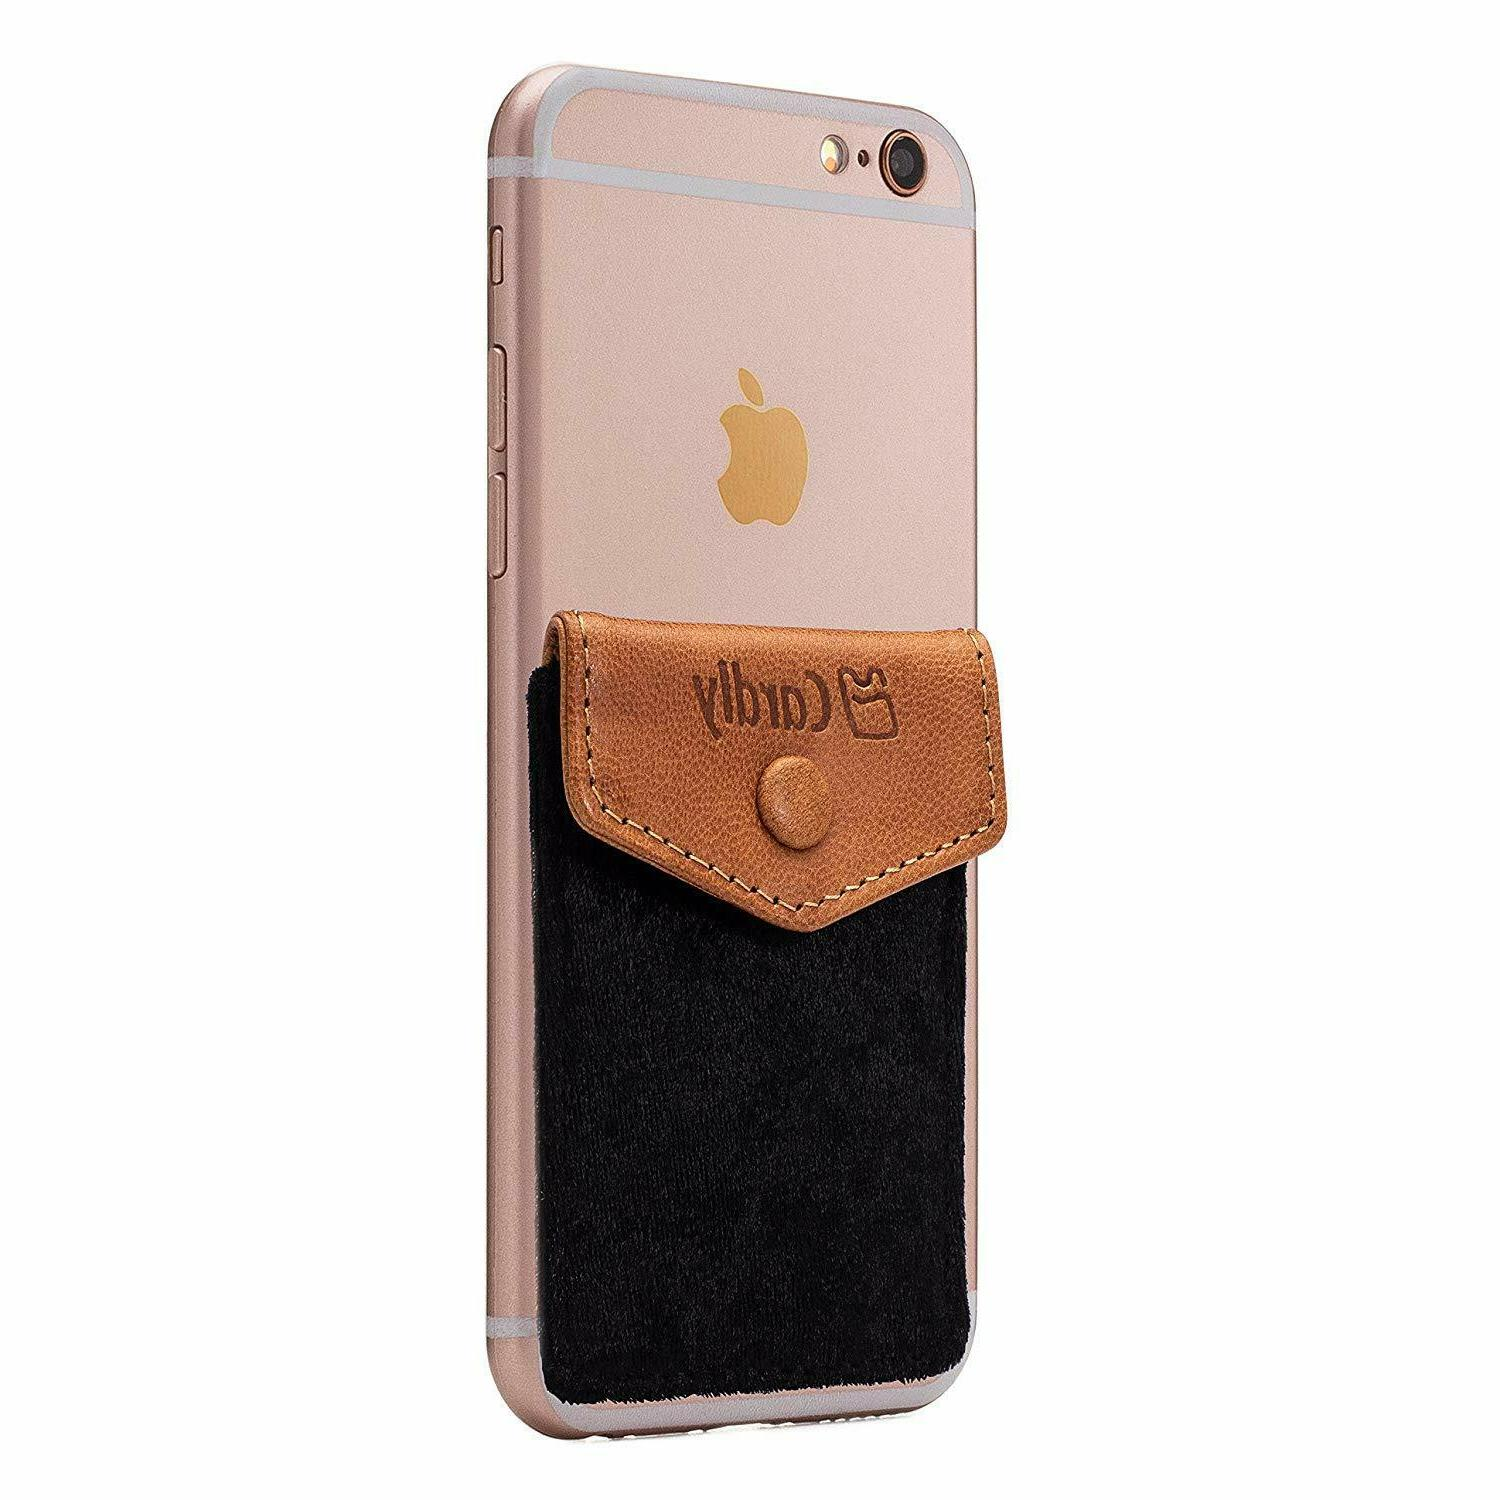 Stick On Wallet Cell Phone Card Holder iPhone Android Sleeve